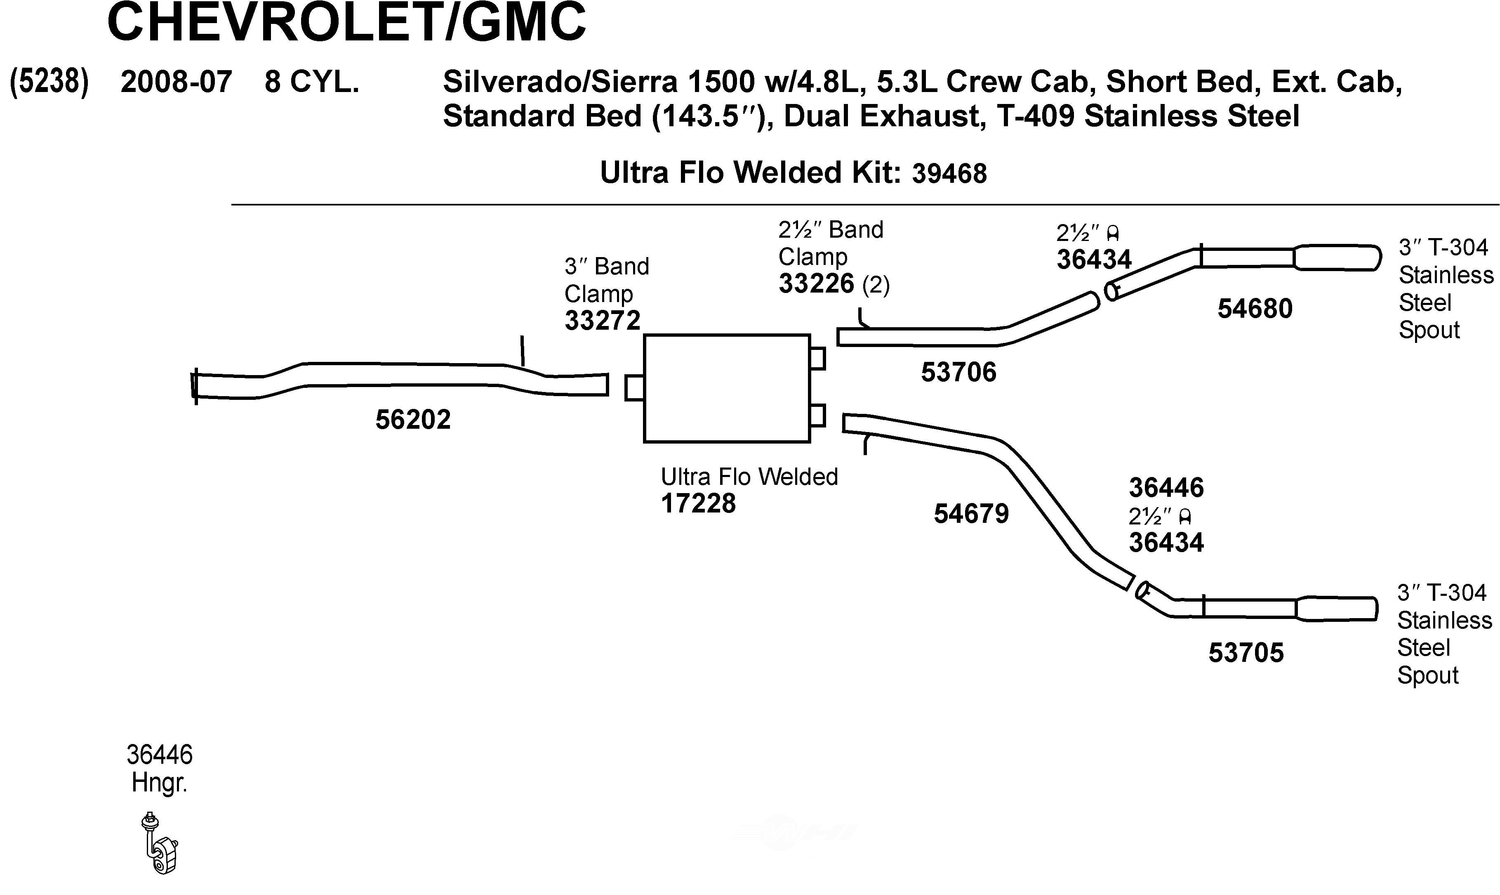 2006 Gmc Savana Exhaust Diagram Diagram Auto Parts